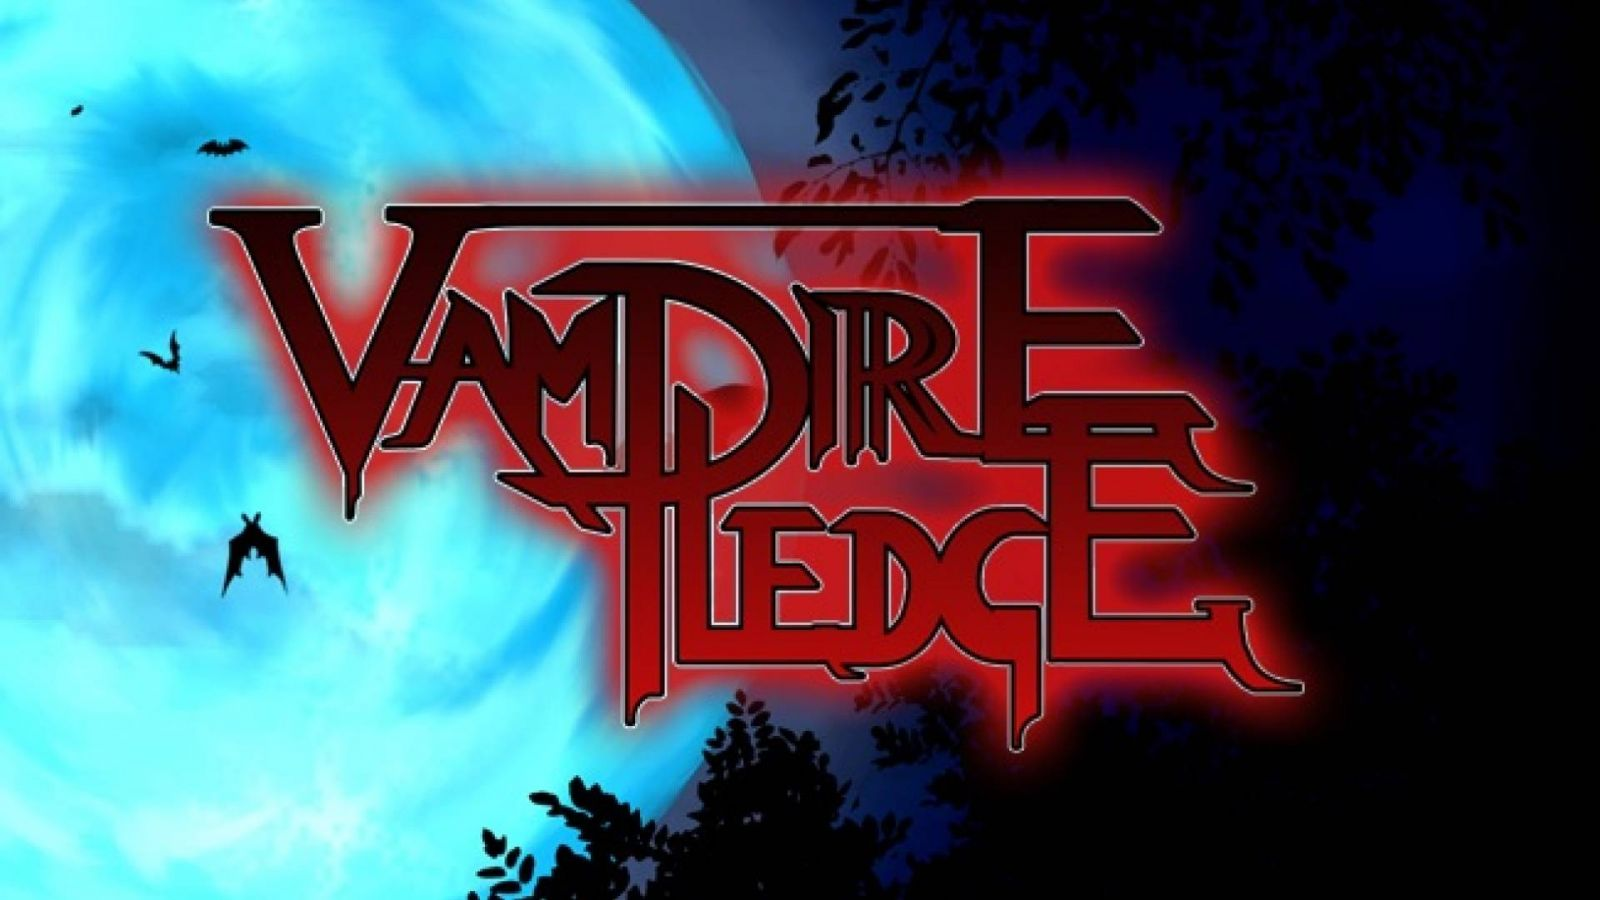 VAMPIRE PLEDGE - VAMPIRE LIBRARY © VAMPIRE PLEDGE